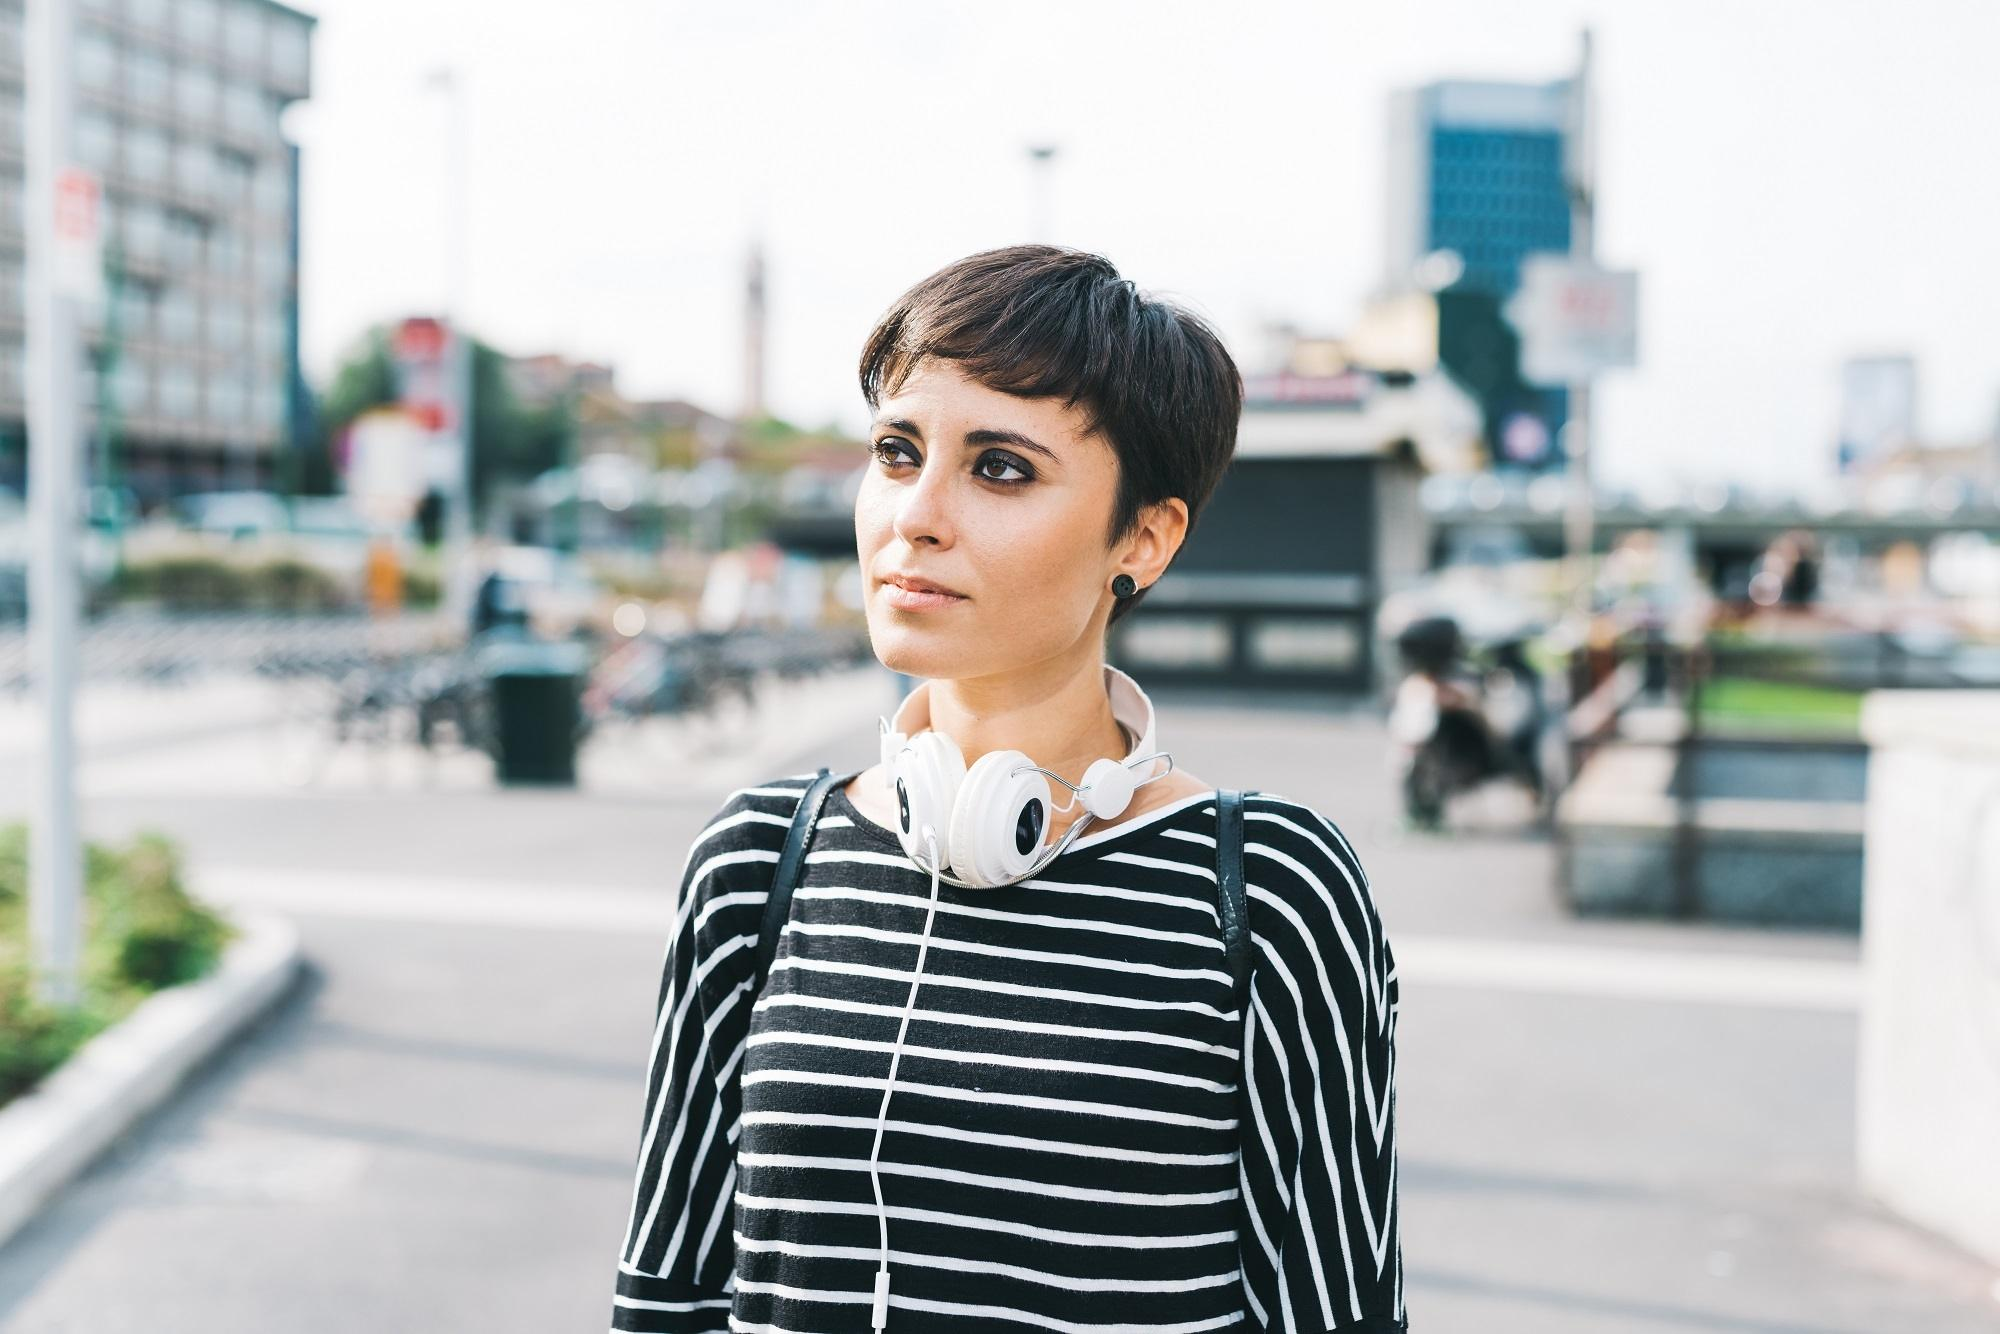 Should I get bangs: Woman with black pixie cut wearing a long-sleeved striped shirt outdoors